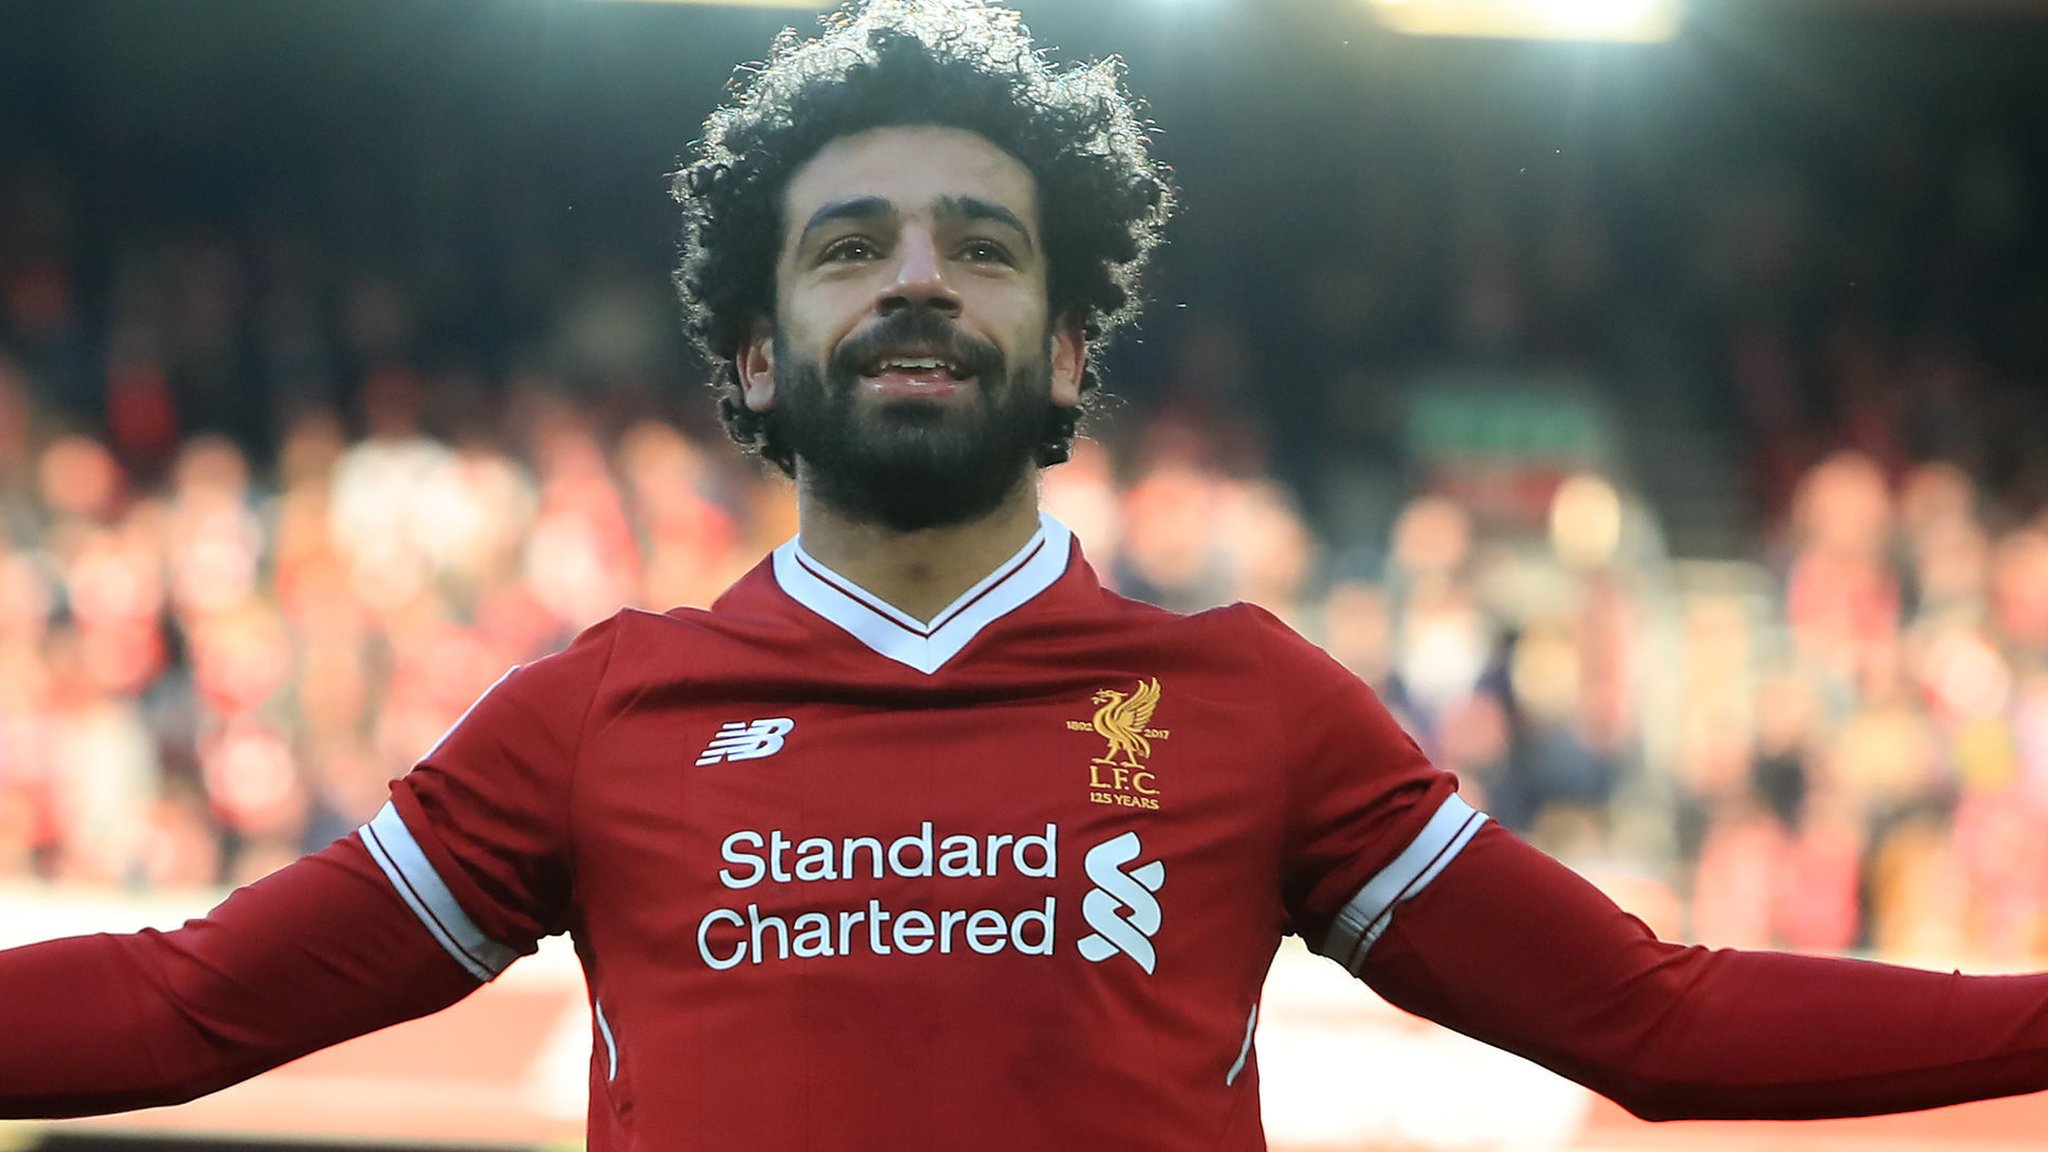 'We want to show world-class talent can flourish here' - Salah signs new long-term Liverpool deal